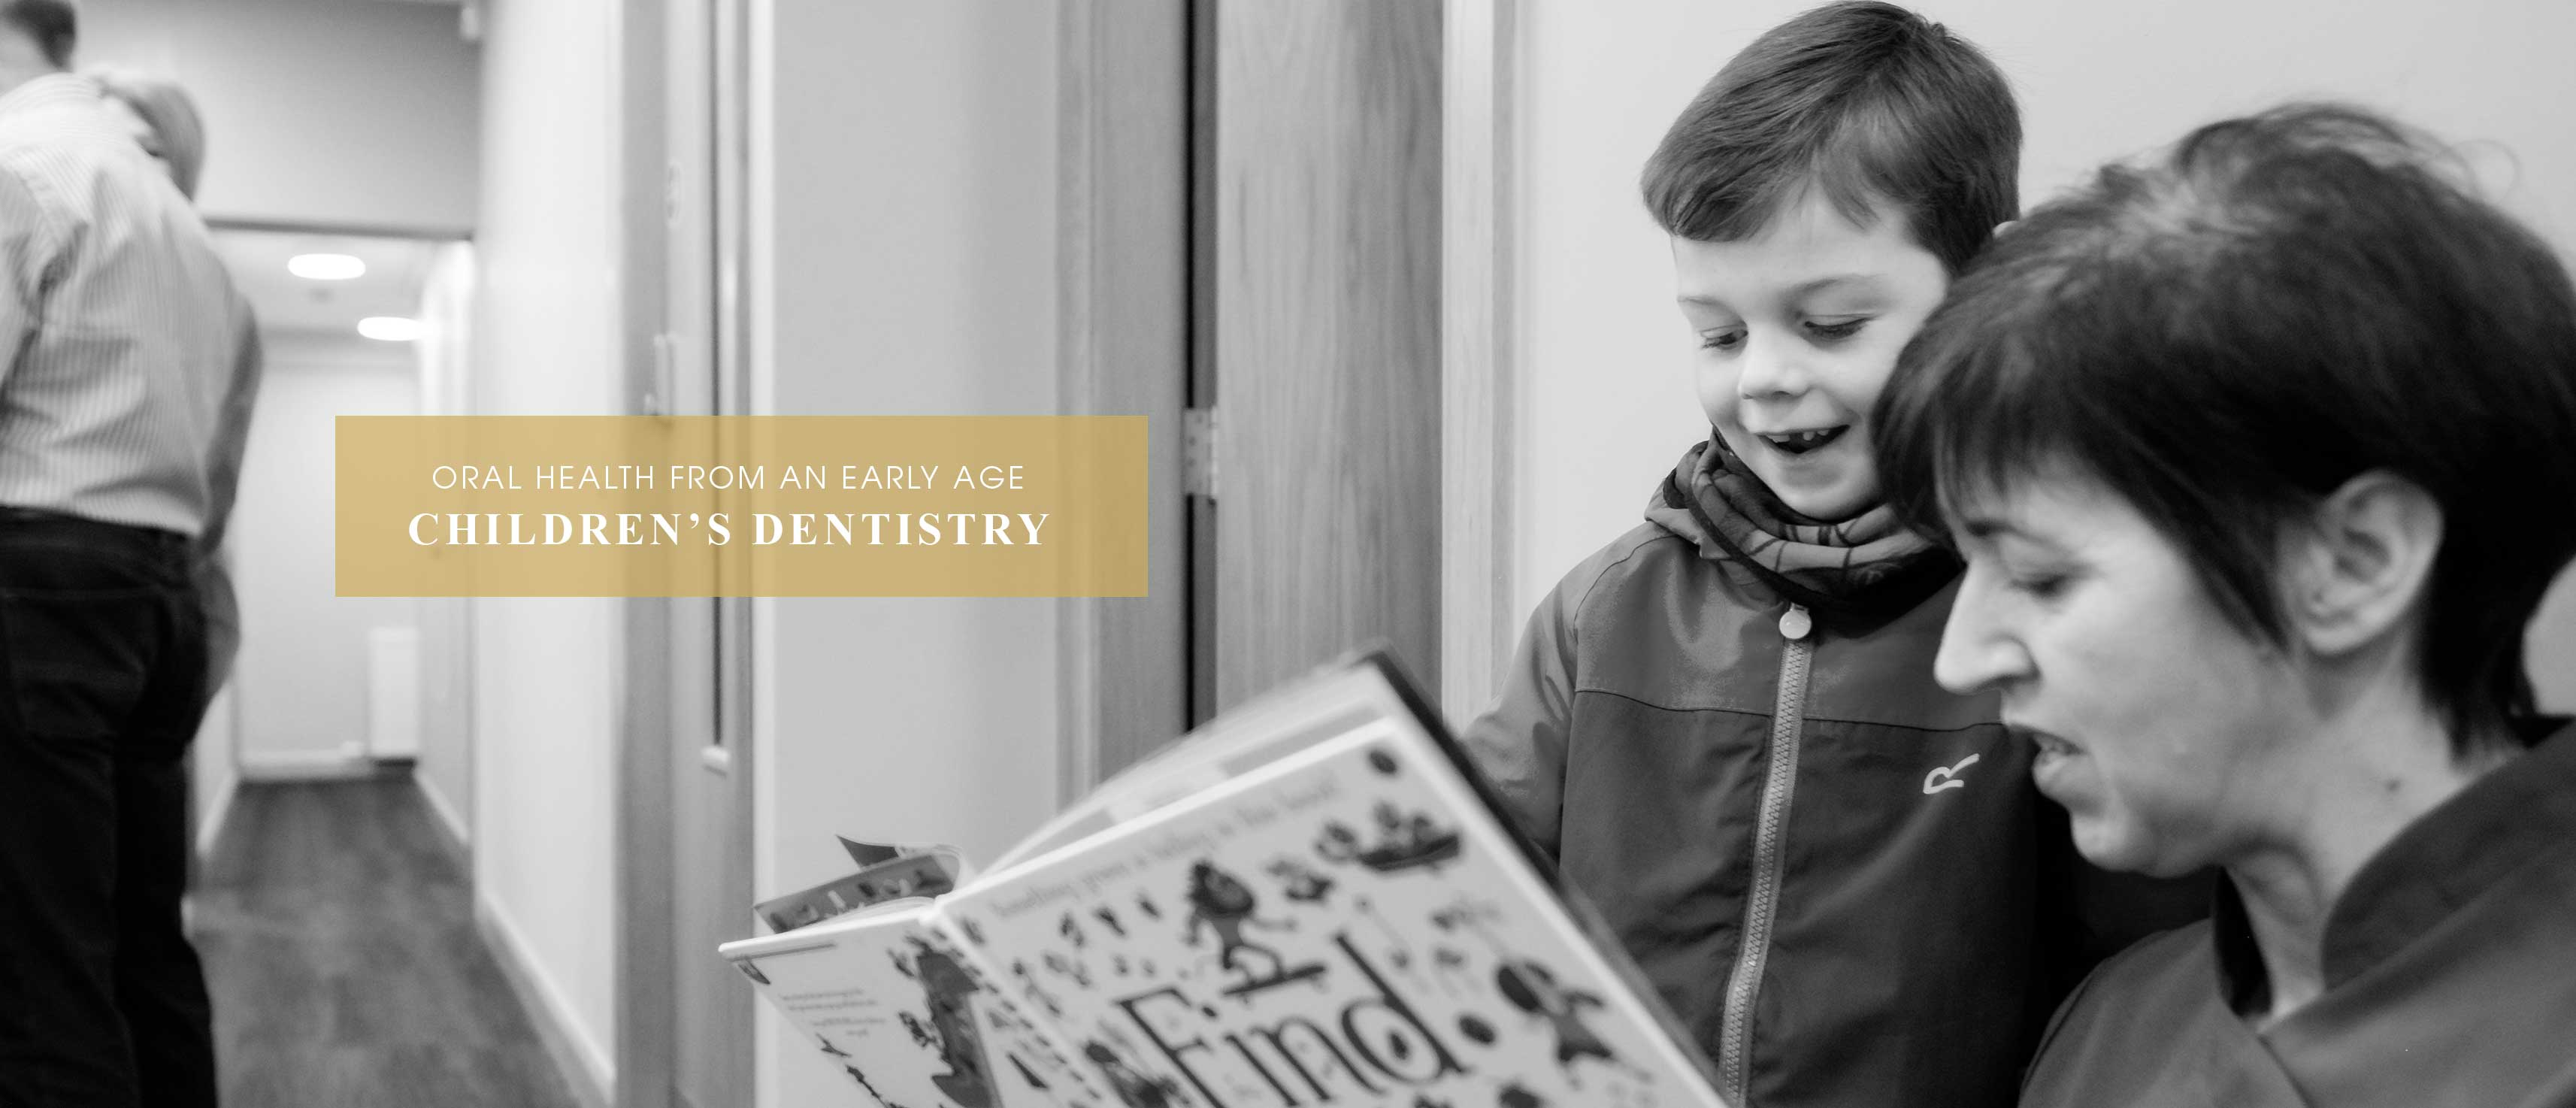 Oral Health from an Early Age. Children's Dentistry.